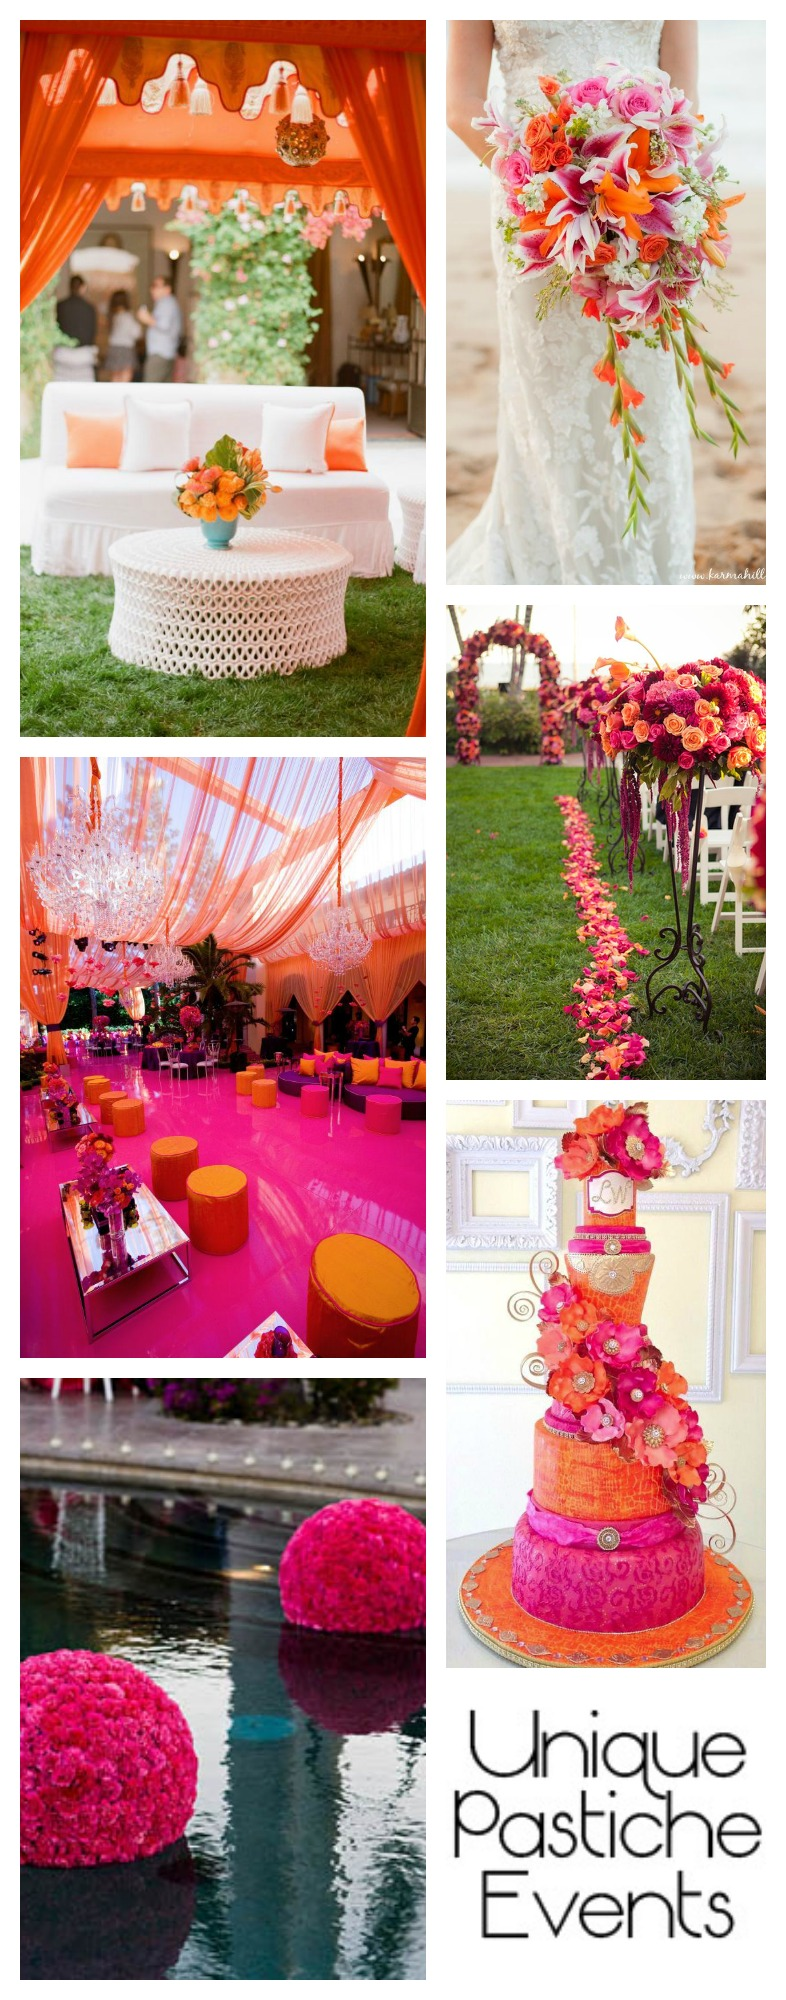 hot pink and orange summer wedding ideas | unique pastiche events